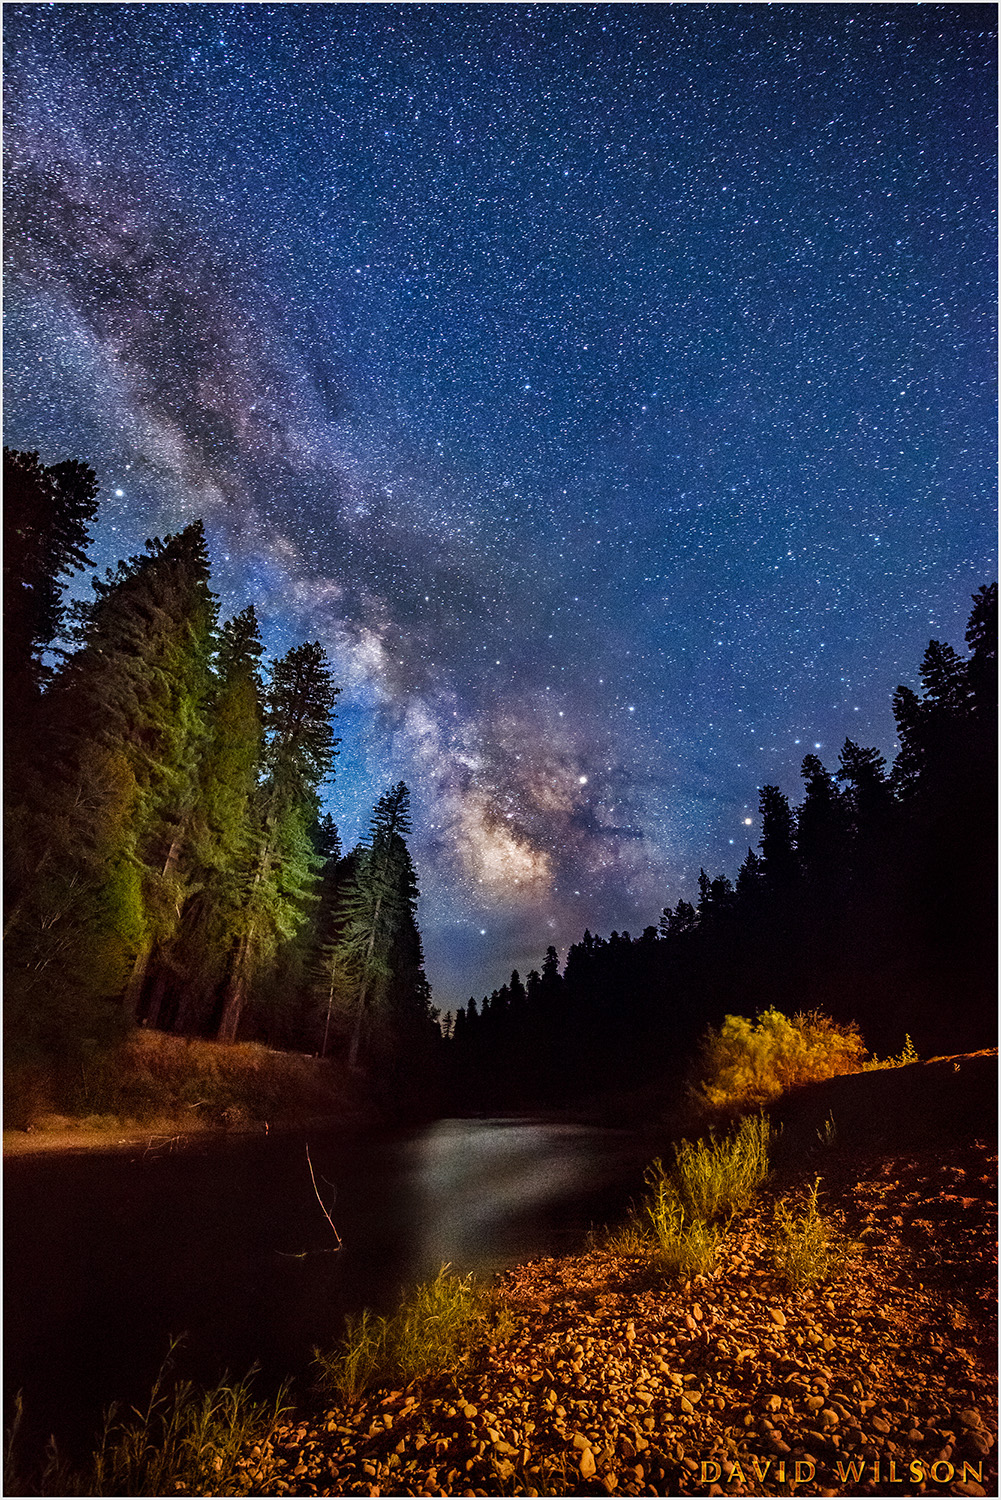 Milky Way over South Fork Eel River, Humboldt County, California.